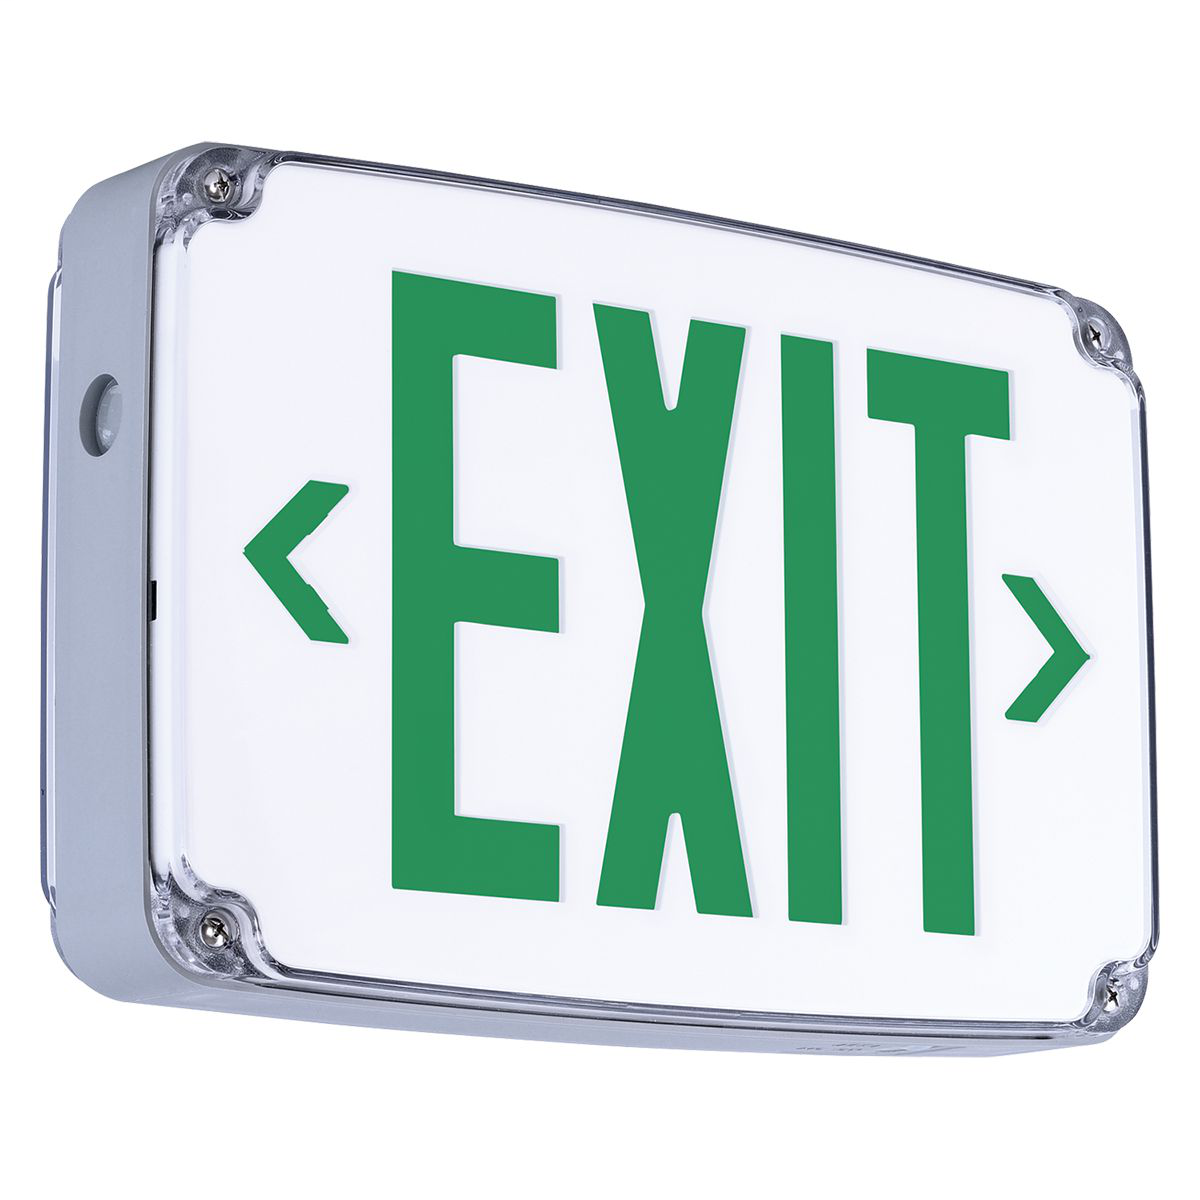 COMP CEWSRE RED LED EXIT SIGN